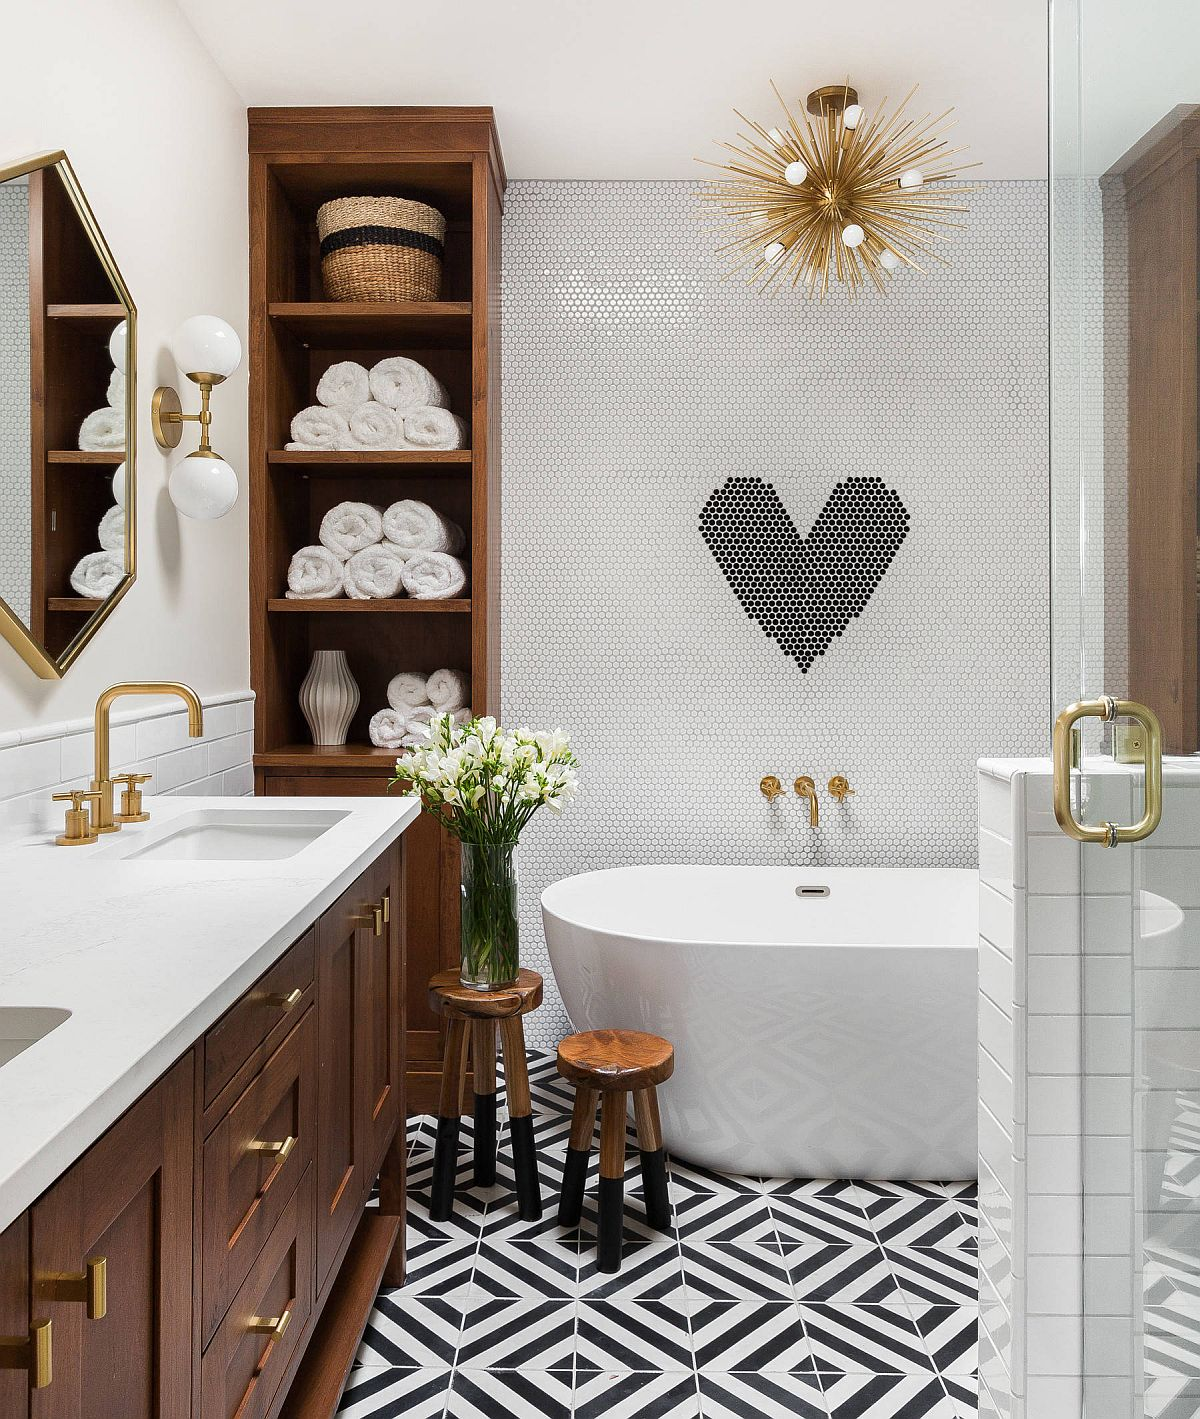 Penny tiles and floor tiles bring pattern to the bathroom in white and black along with wooden vanity